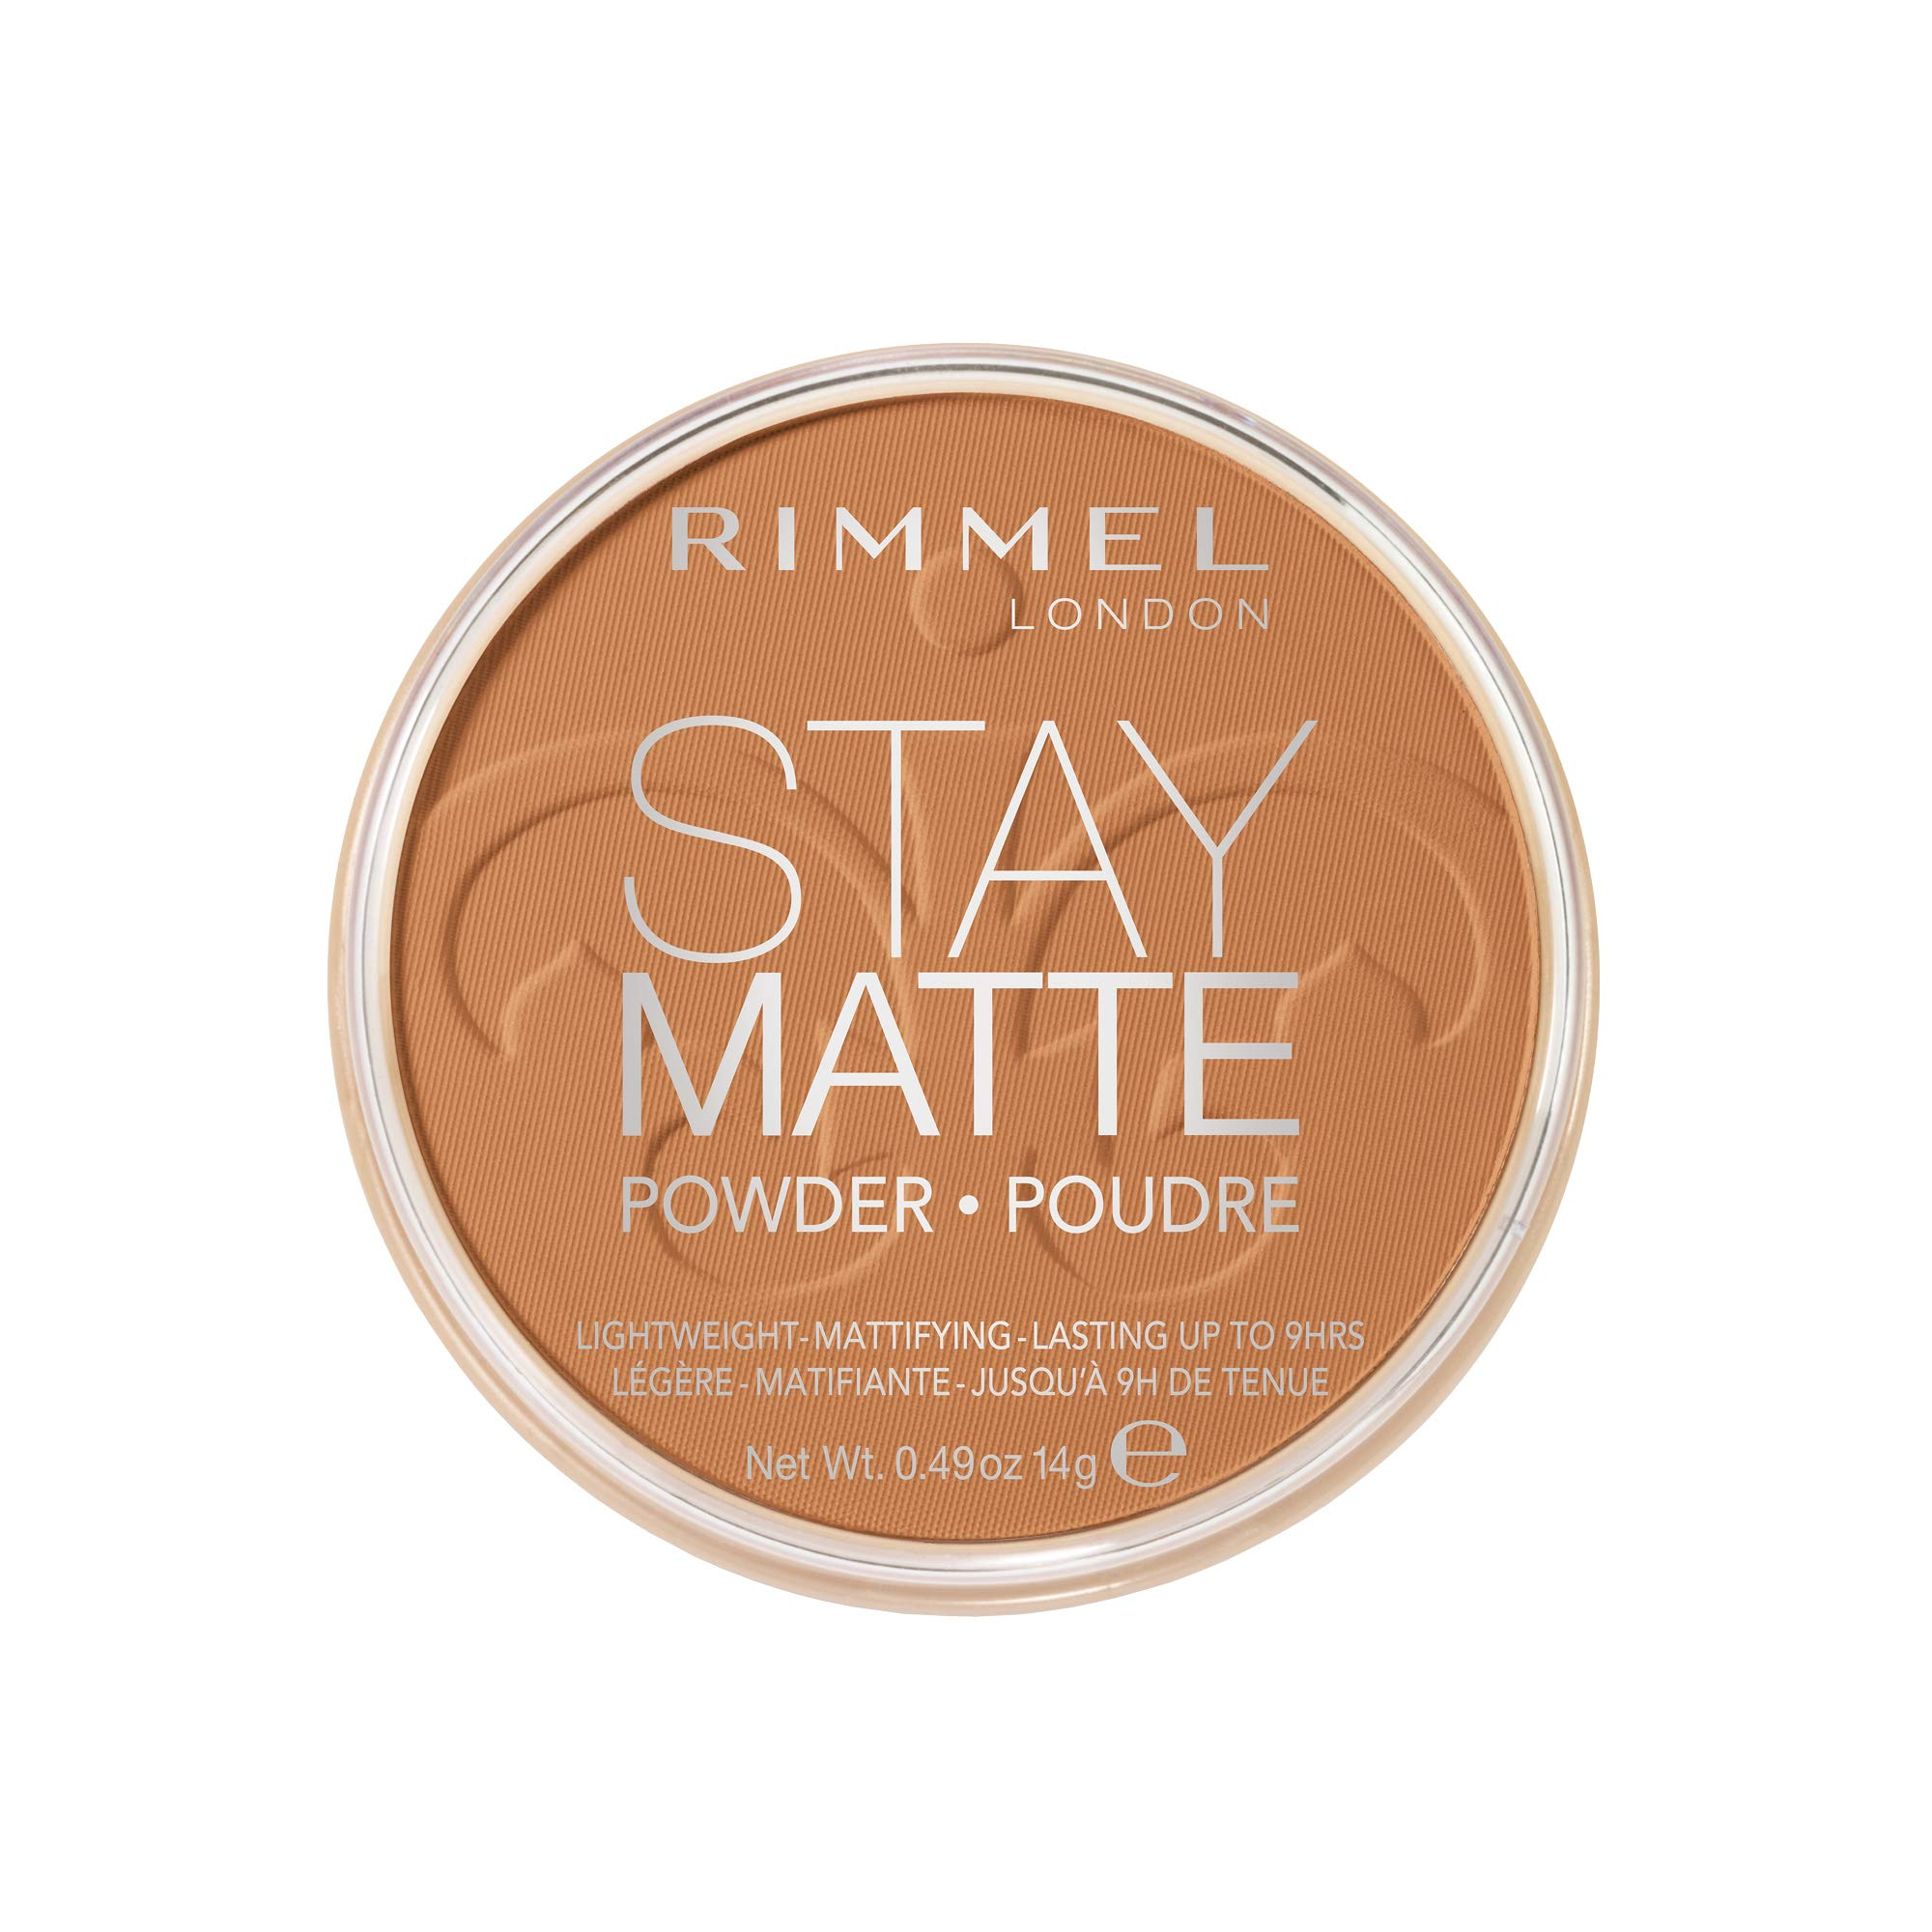 Stay Matte Pressed Powder in 025 Toffee, 0.49 Ounce (Pack of 1)